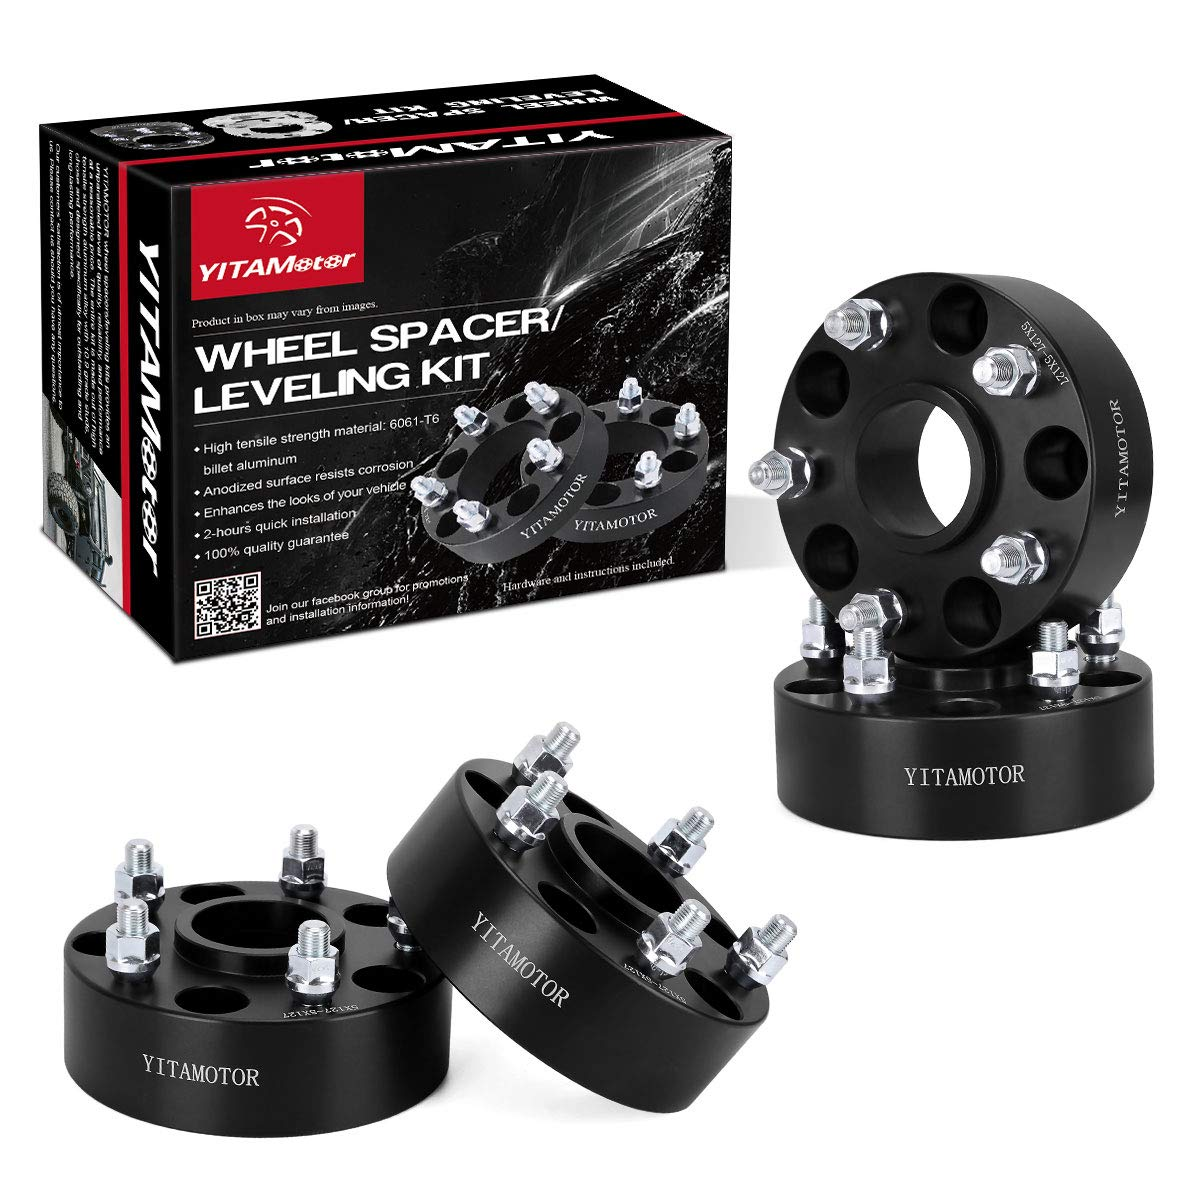 YITAMOTOR 2nd-gen Forged Hubcentric Wheel Spacers, 5x5 Wheel Spacers 2', SGS Approved, Compatible for 2007-2017 Jeep Wrangler JK JKU, 1999-2010 Grand Cherokee WJ WK, 2005-2010 Commander XK Black 5x5 Wheel Spacers 2